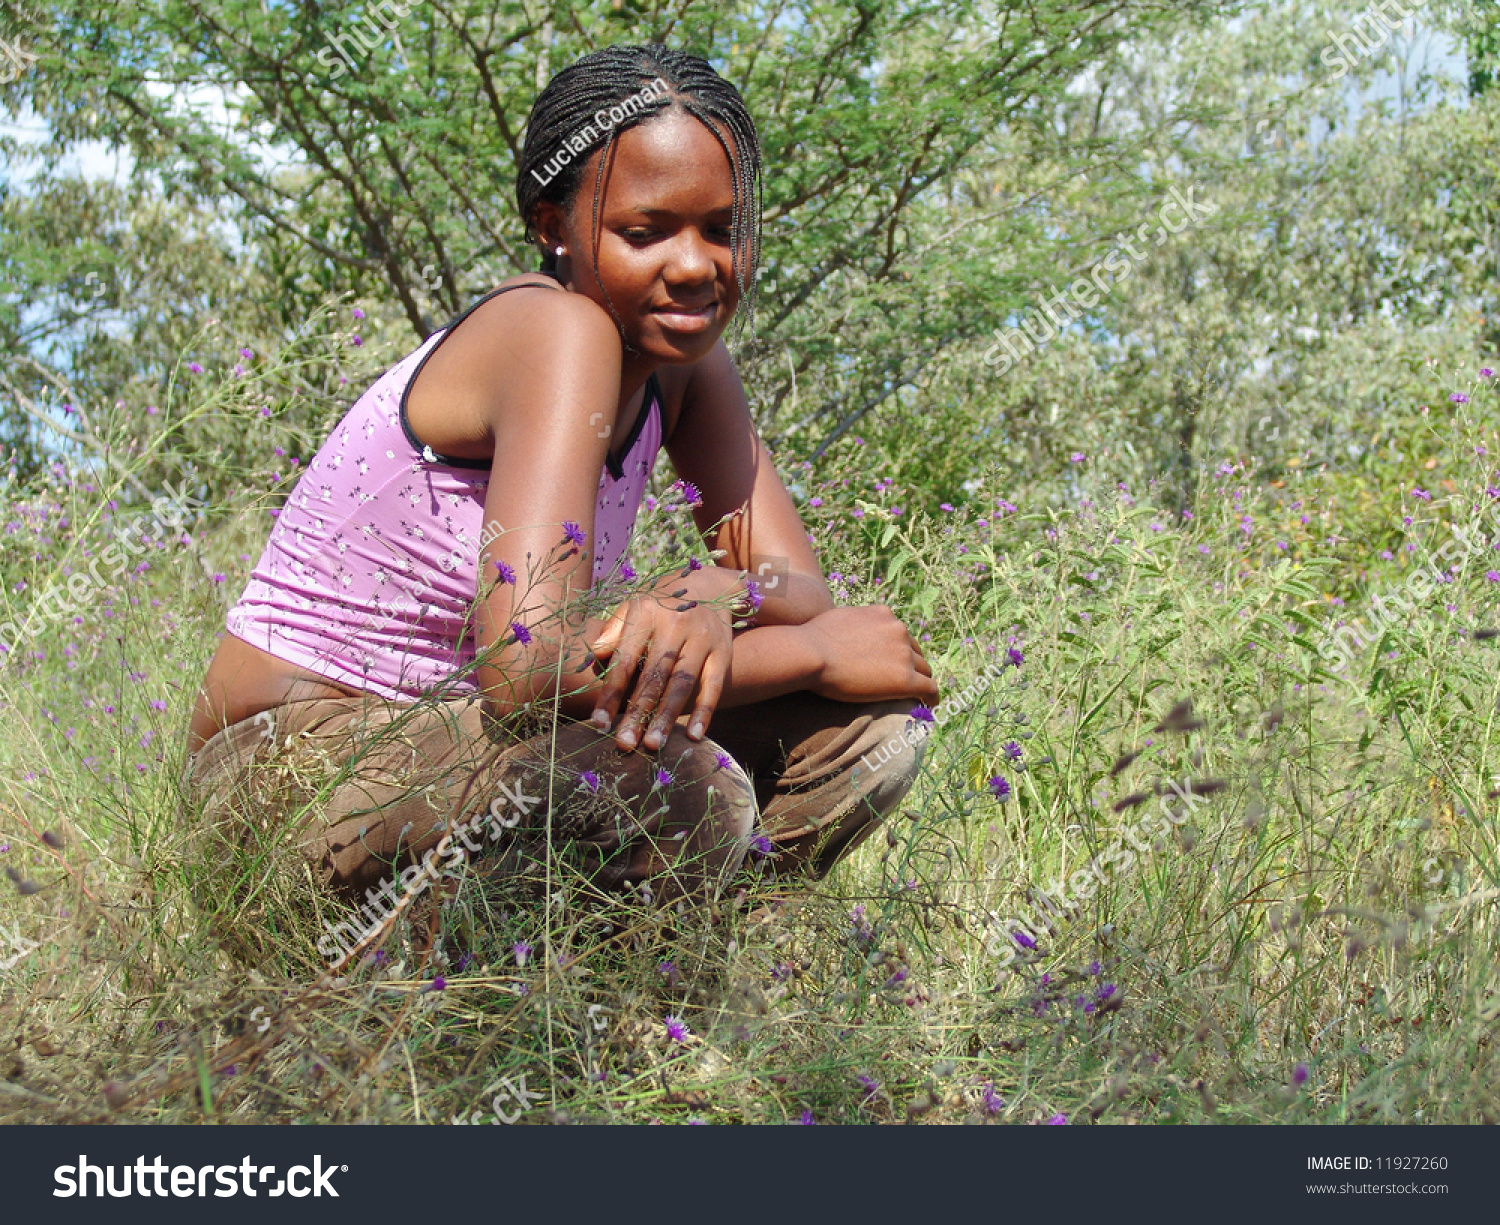 Nude Native African Teens Free Download 110